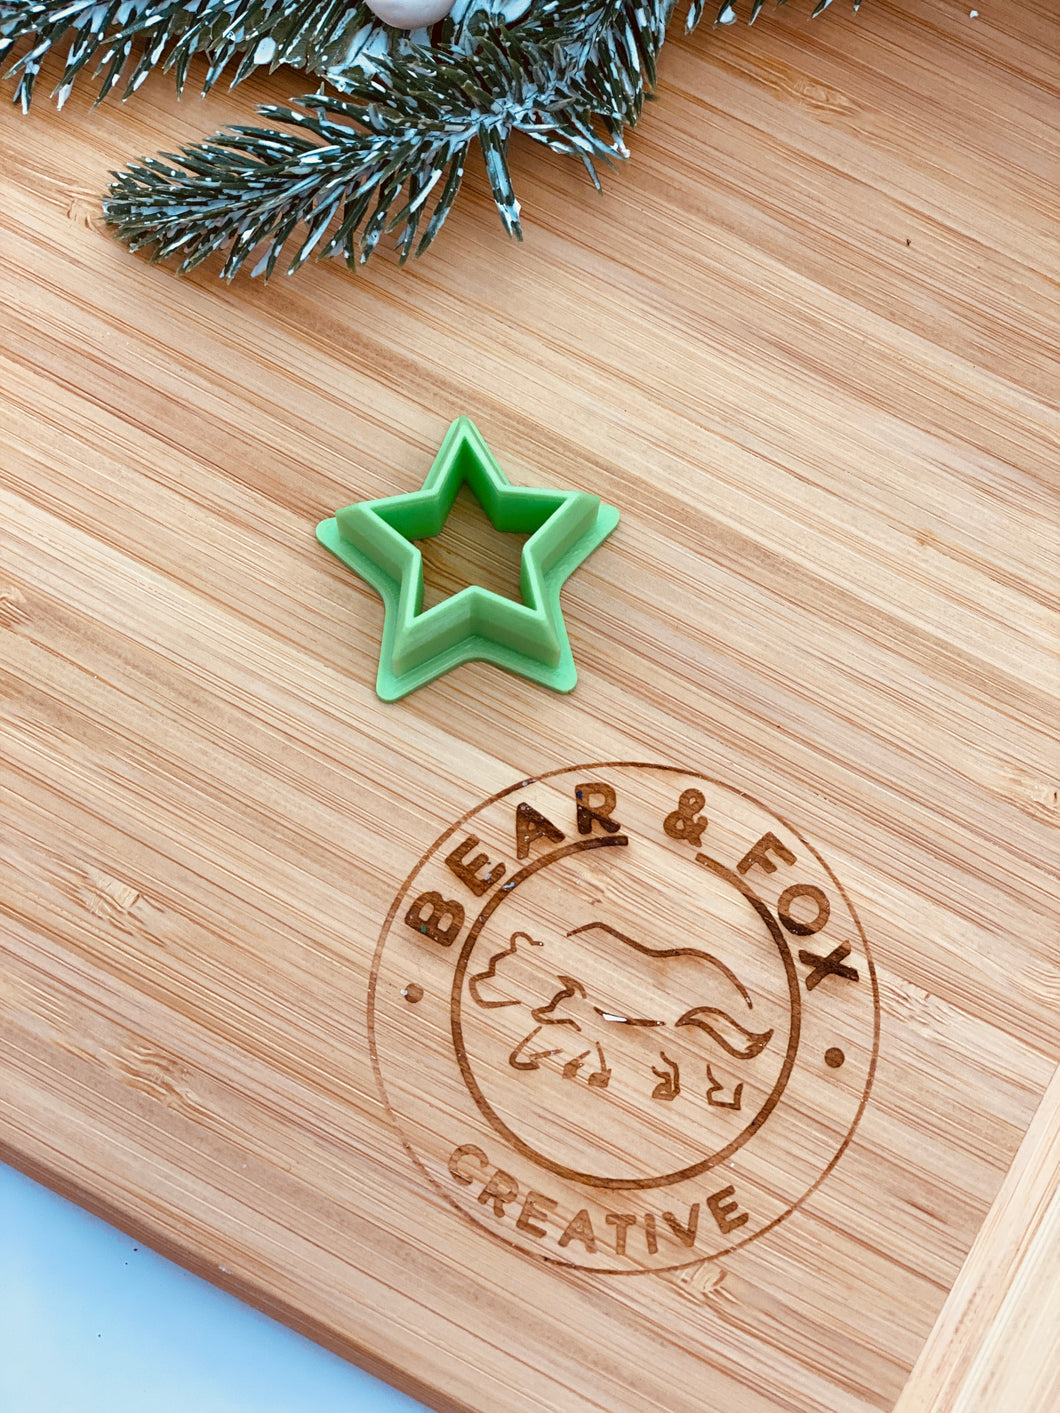 Star (Small - For Grinch Christmas Tree)